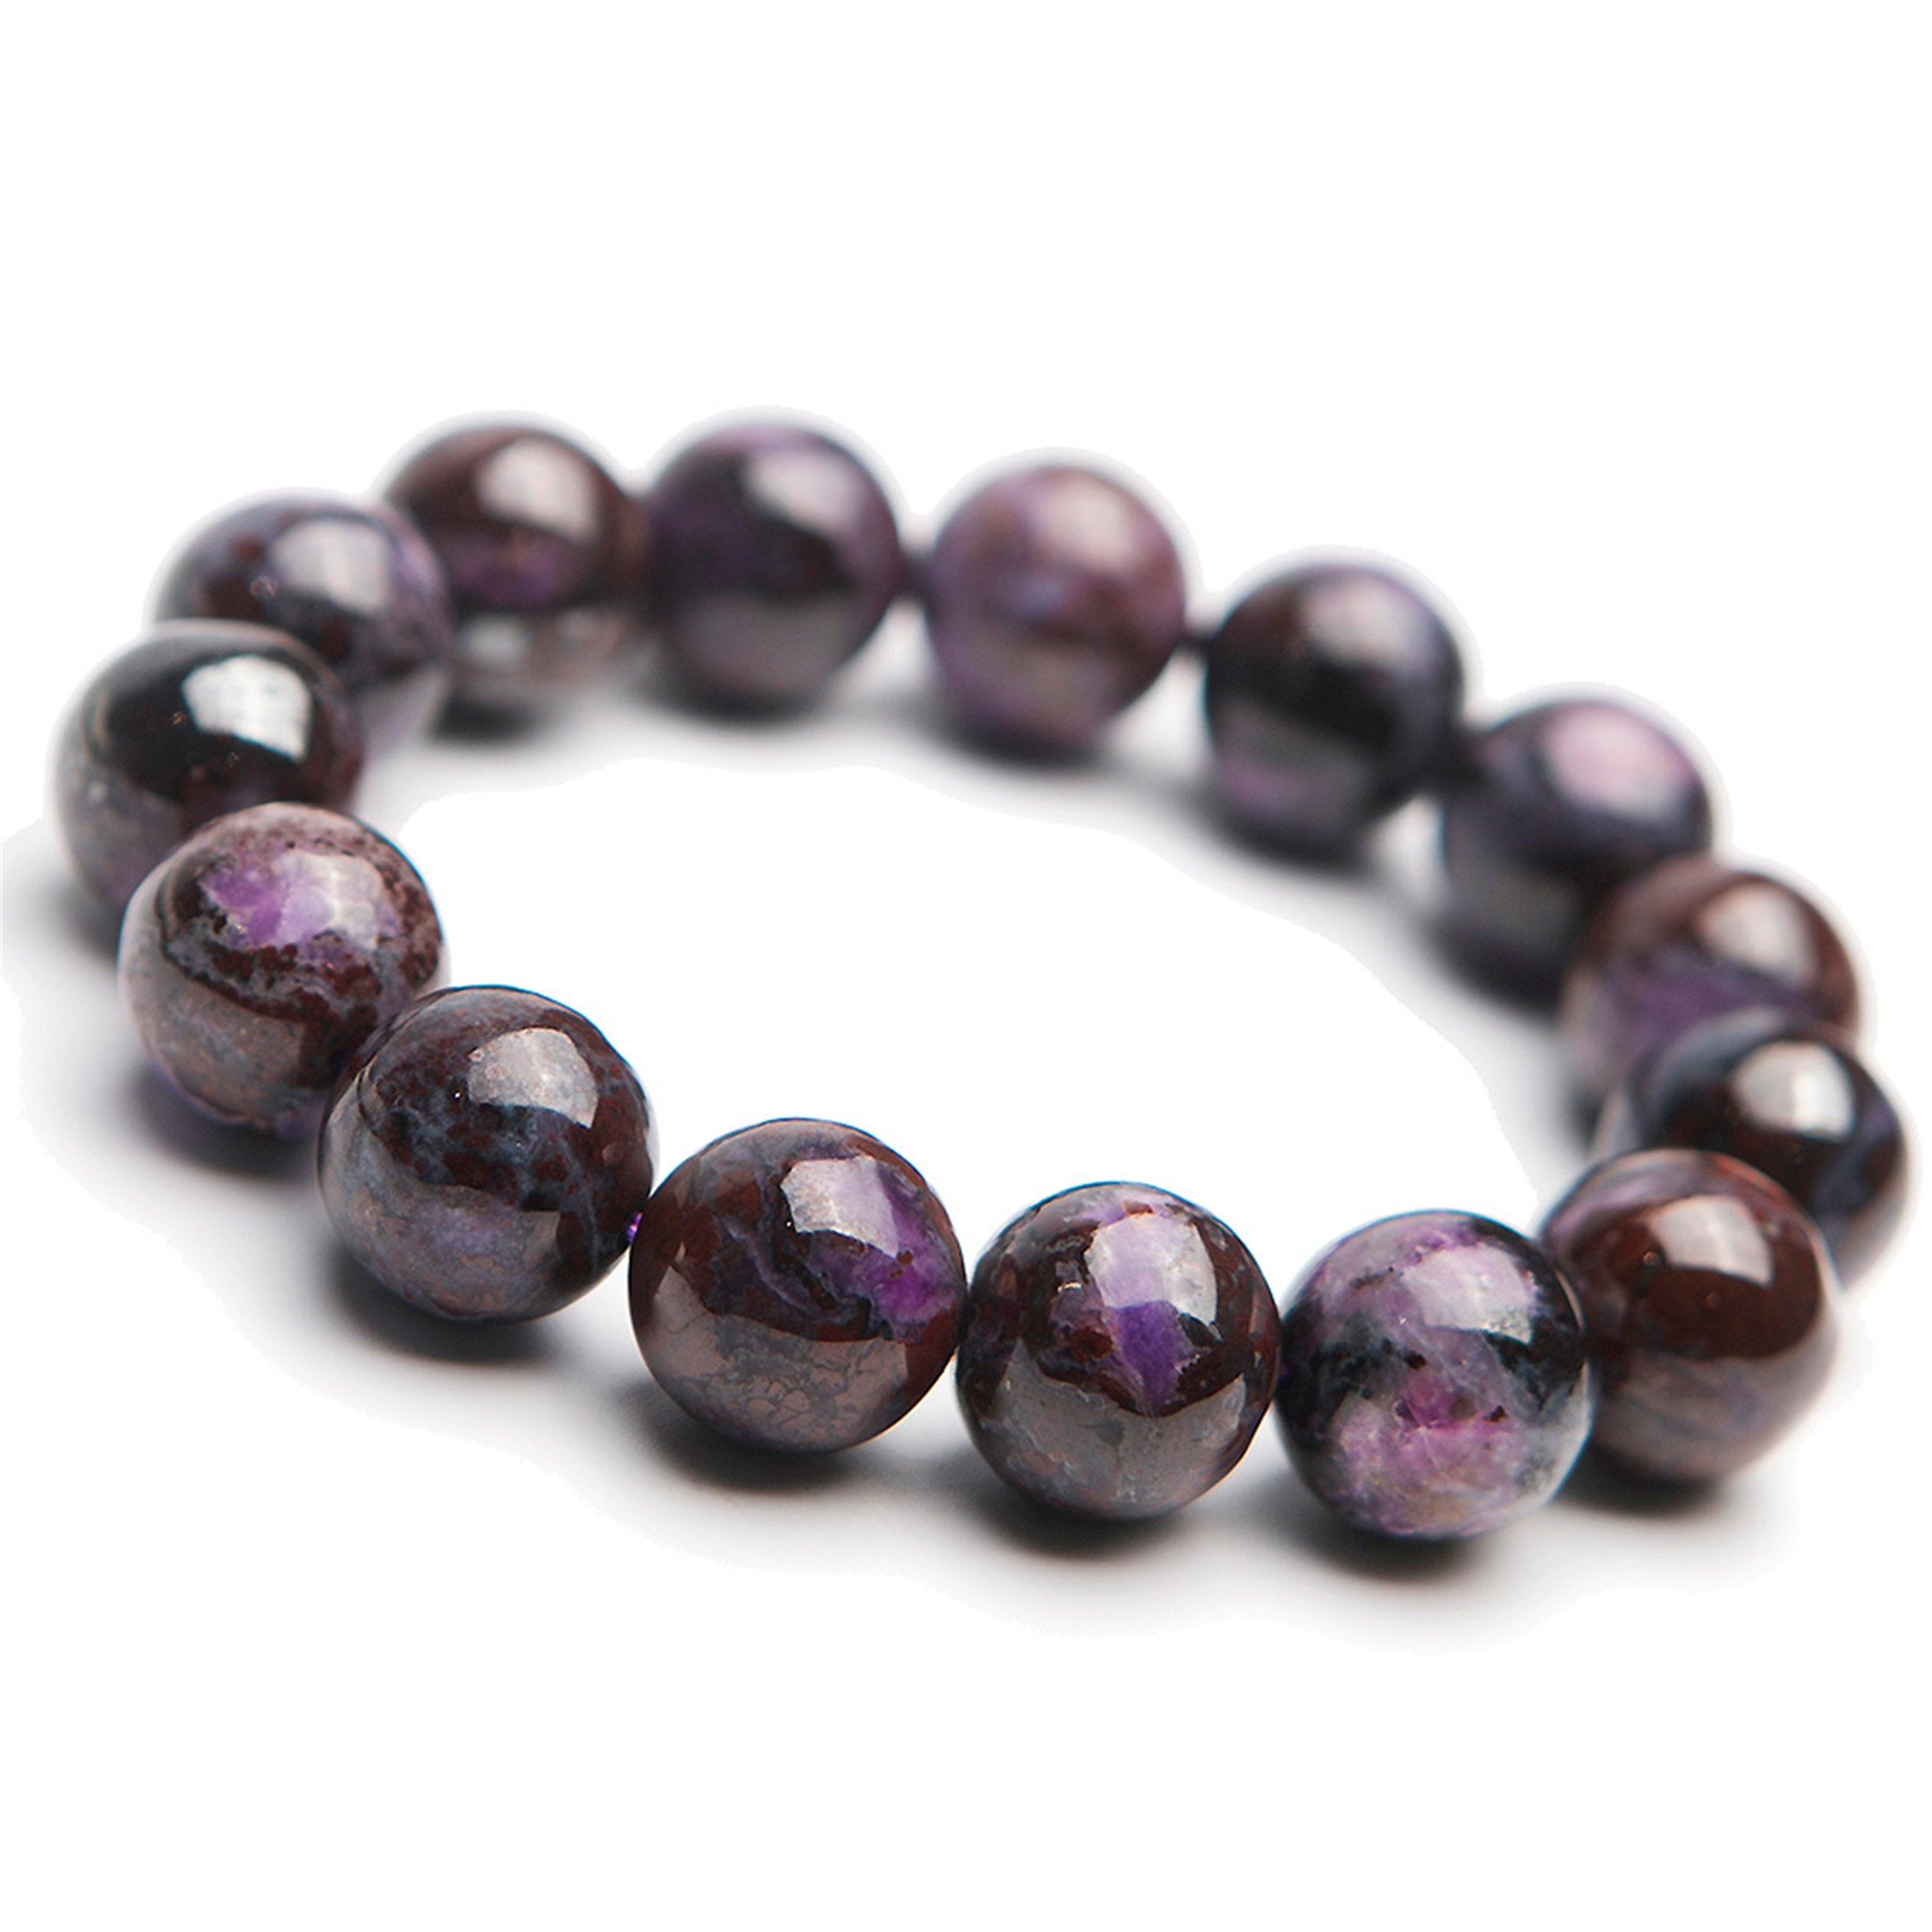 LiZiFang South African Purple Natural Sugilite Gemstone Stretch Round Crystal Bead Bracelet 13mm